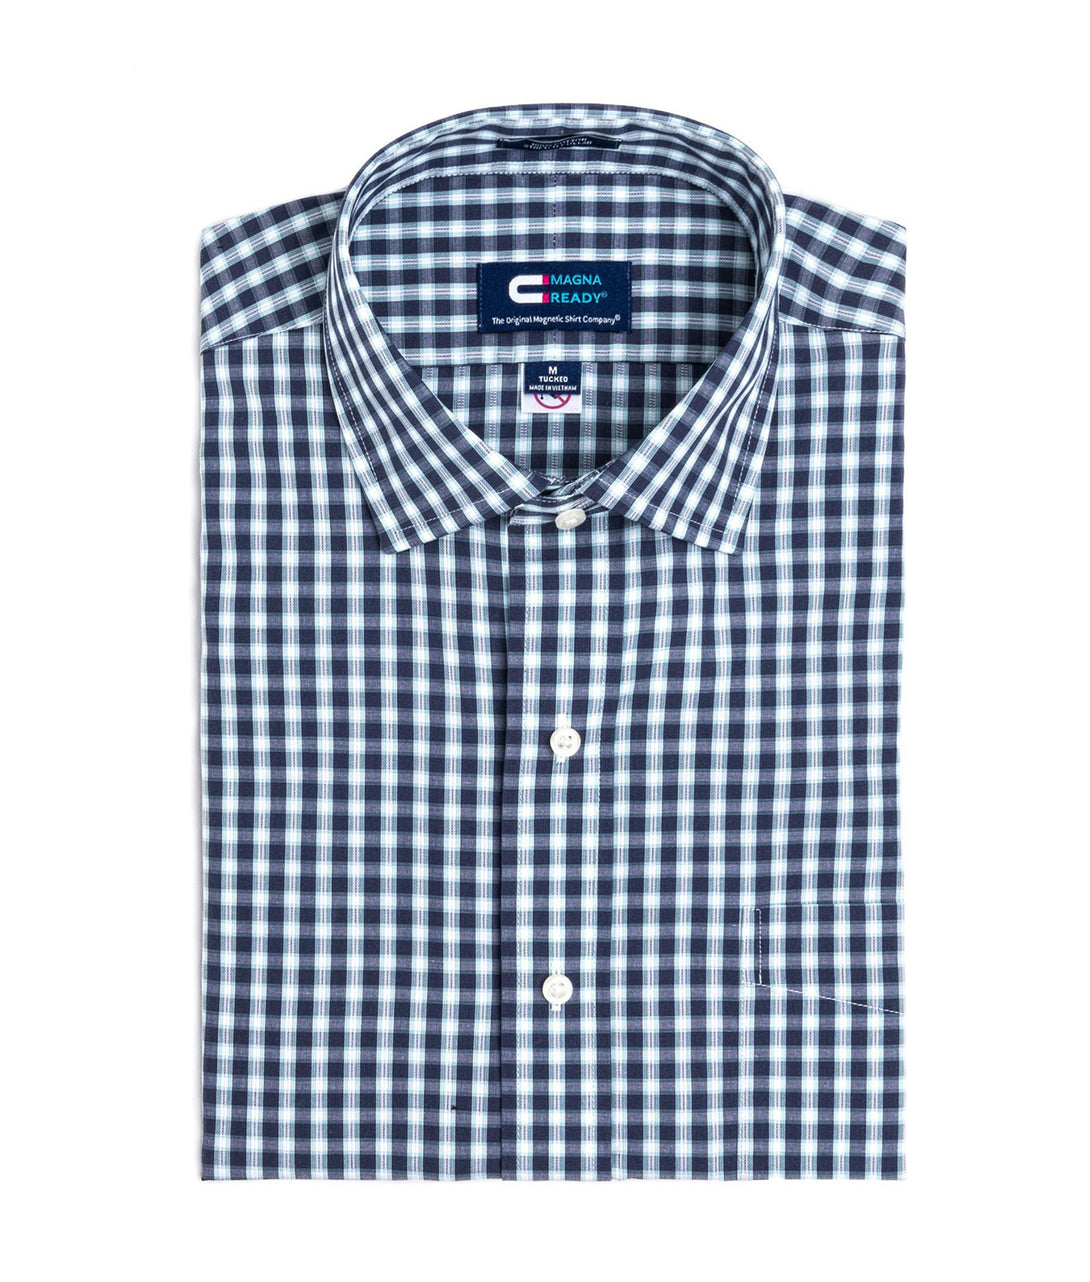 Navy, White and Teal Check Long Sleeve Shirt with Magnetic Closures | JUNIPERunltd